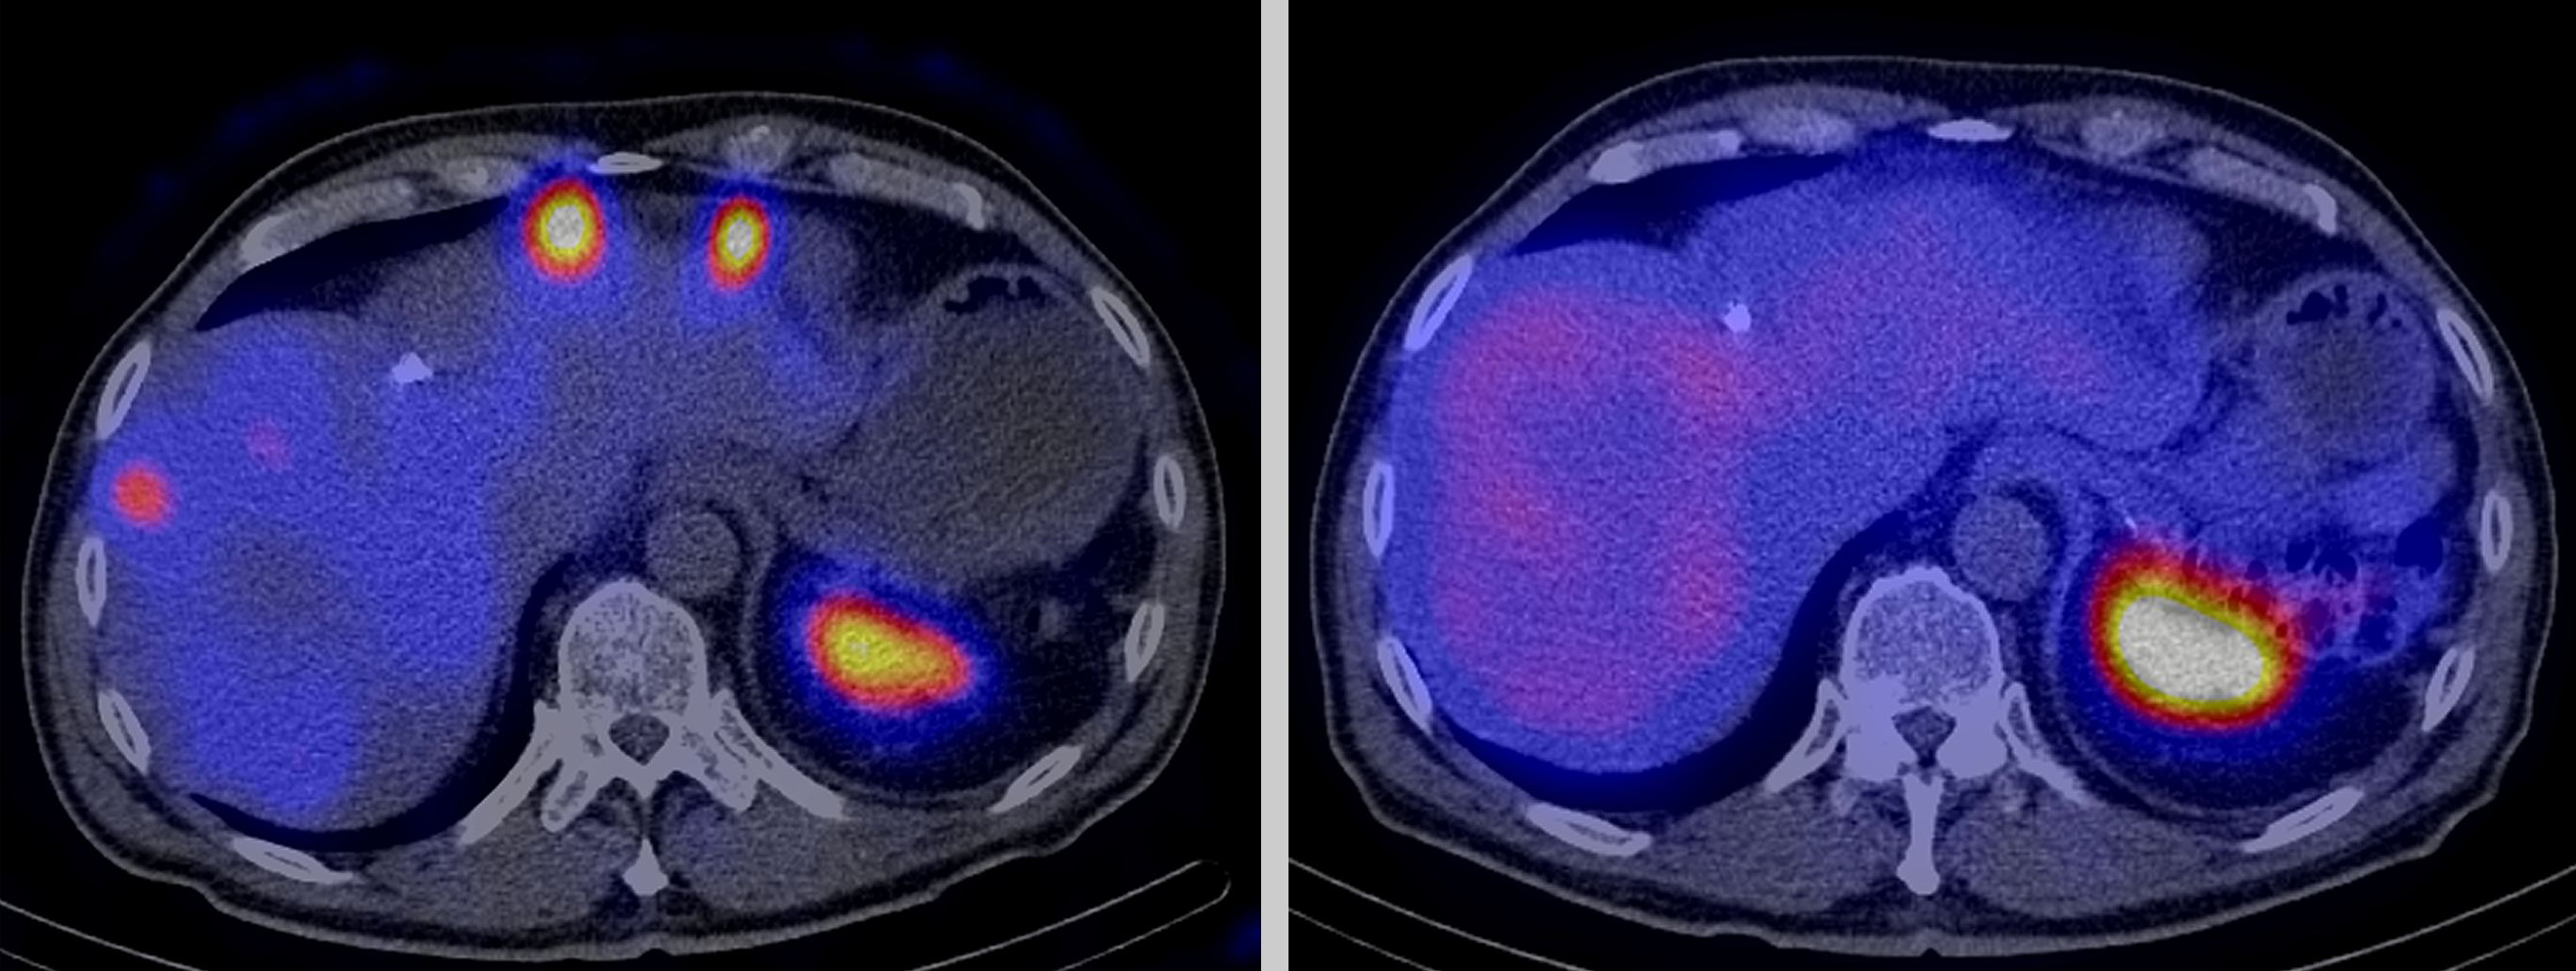 Radioactive drugs also destroy a tumour's scattered metastases. The two photographs show a cross-section of a patient's stomach, whose cancer has formed metastases in the liver. The image on the left was taken directly after the first treatment with a radioactive drug. The white, yellow and red circles at the top depict the metastases. The image on the right was taken after the third treatment five months later: no tumour metastases are visible any longer. The large colour circle at the bottom right in the pictures show the spleen, which also stores this radioactive drug heavily in healthy human beings. However, this splenic storage is harmless for the patients during treatment and has no side-effects. The photographs were taken with a SPECT machine, which measures radiation and depicts the distribution of the radioactive drugs in the body. (Photo: University of Basel)